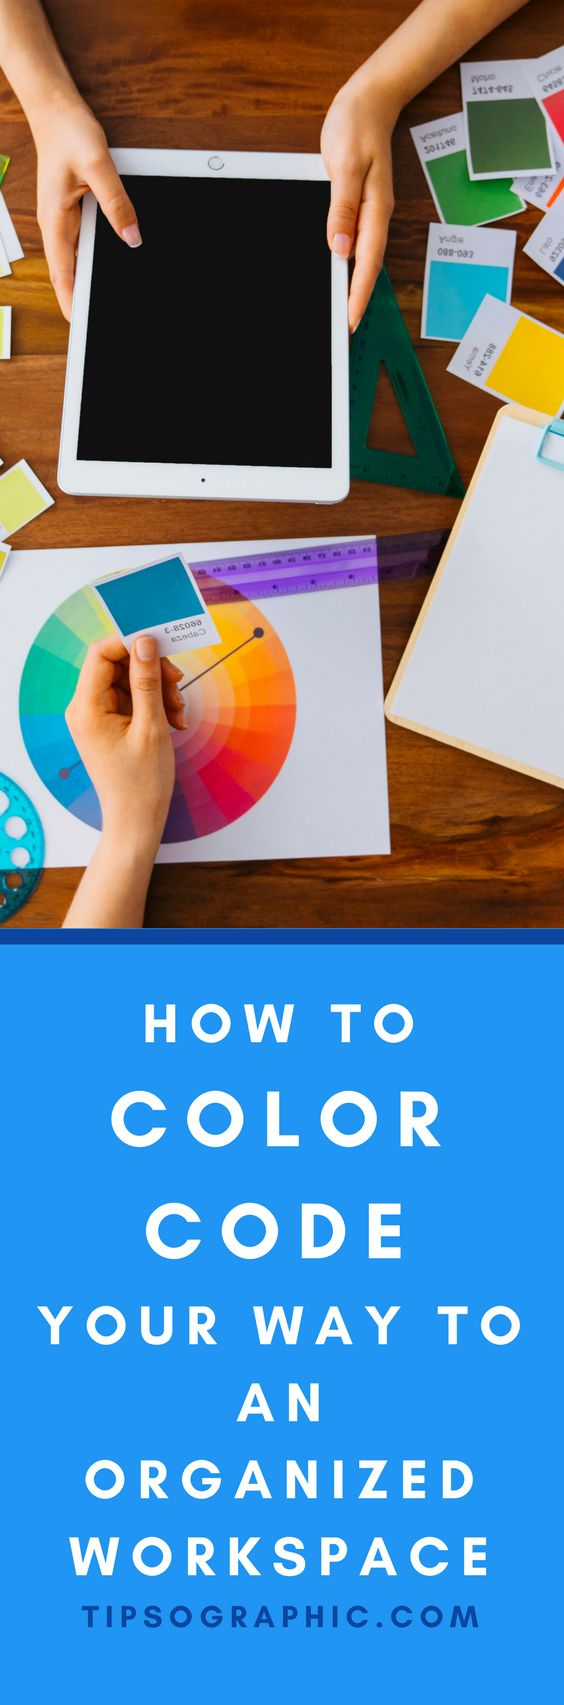 79 best productivity images on pinterest project management how to color code your way to an organized workspace fandeluxe Choice Image